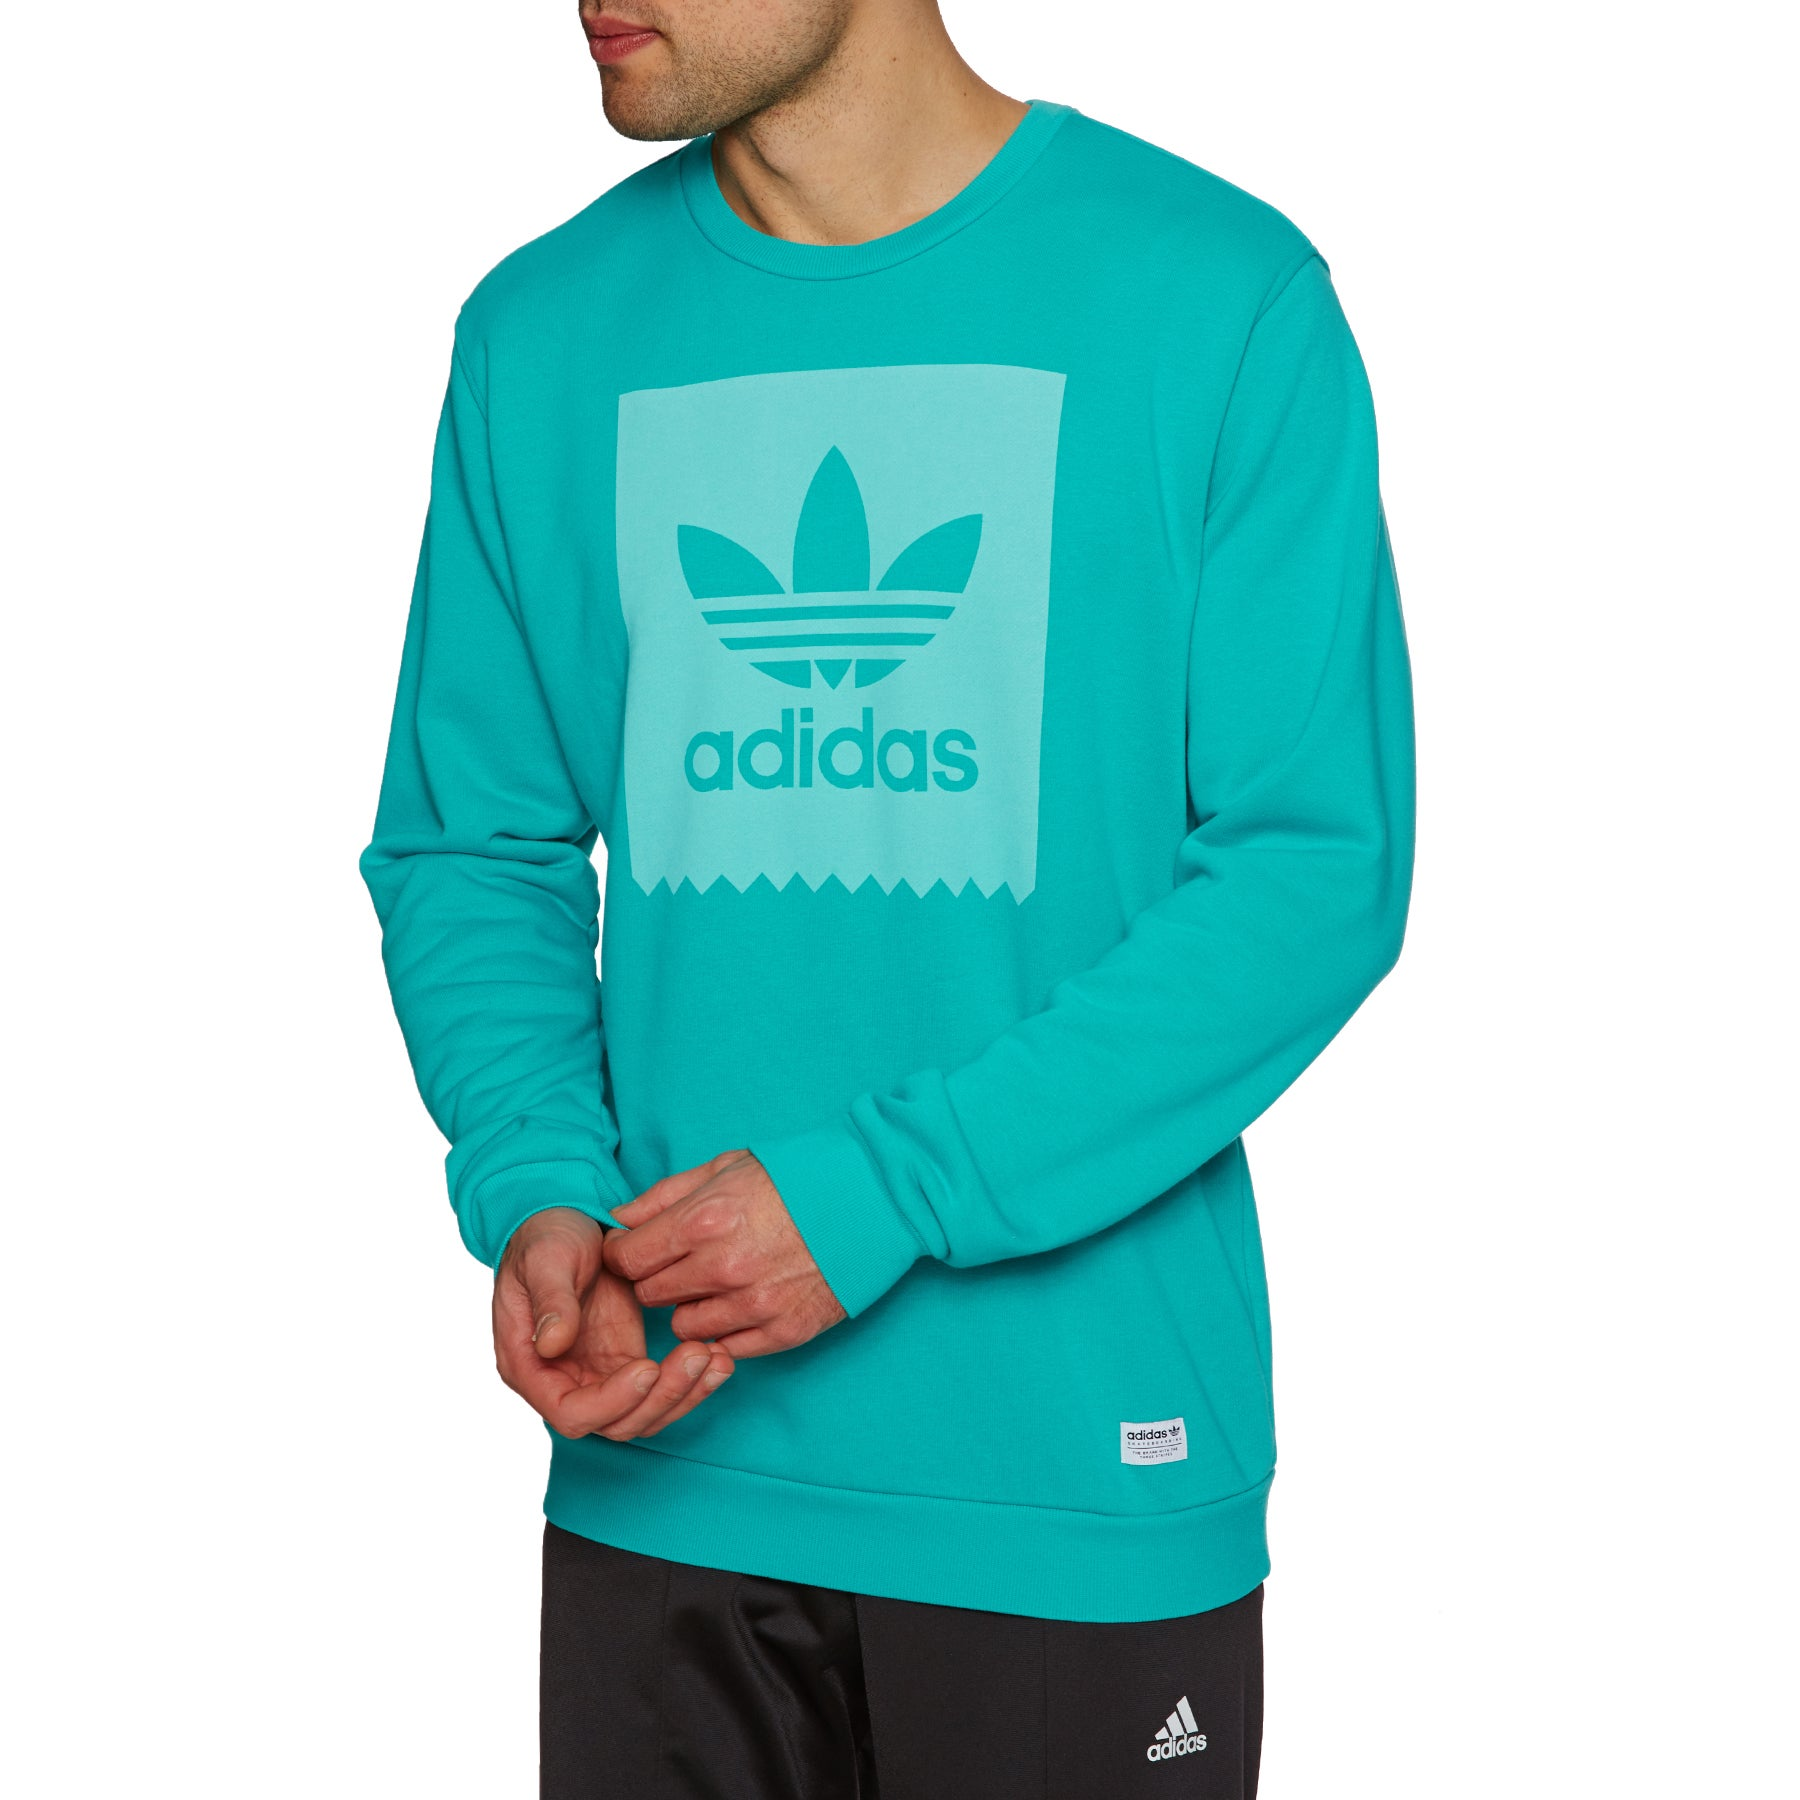 De Disponible Surfdome Sudadera Crew Adidas Gd nq7xPP8AS